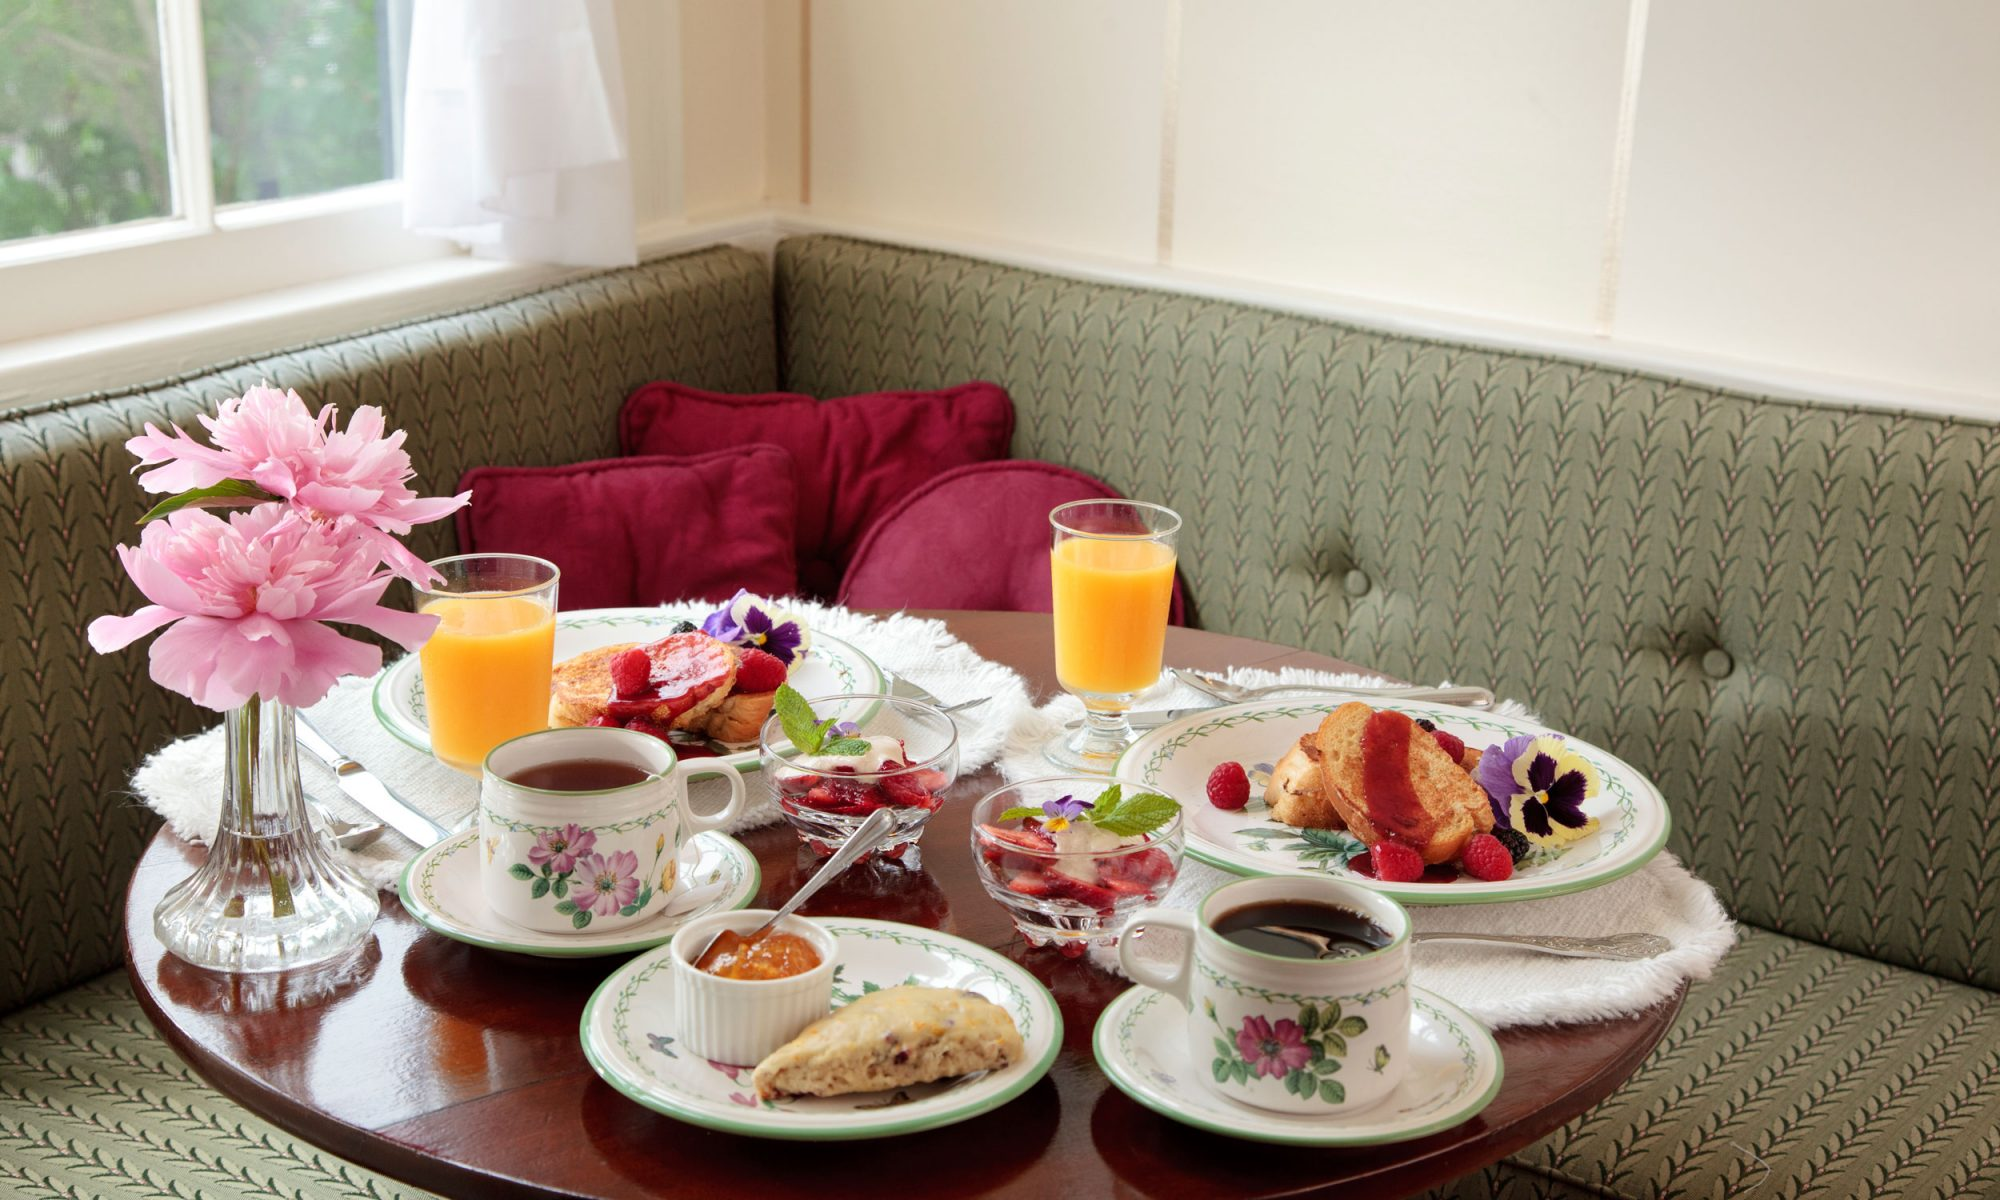 EC: Why You Should Embrace the Awkwardness of Bed-and-Breakfasts